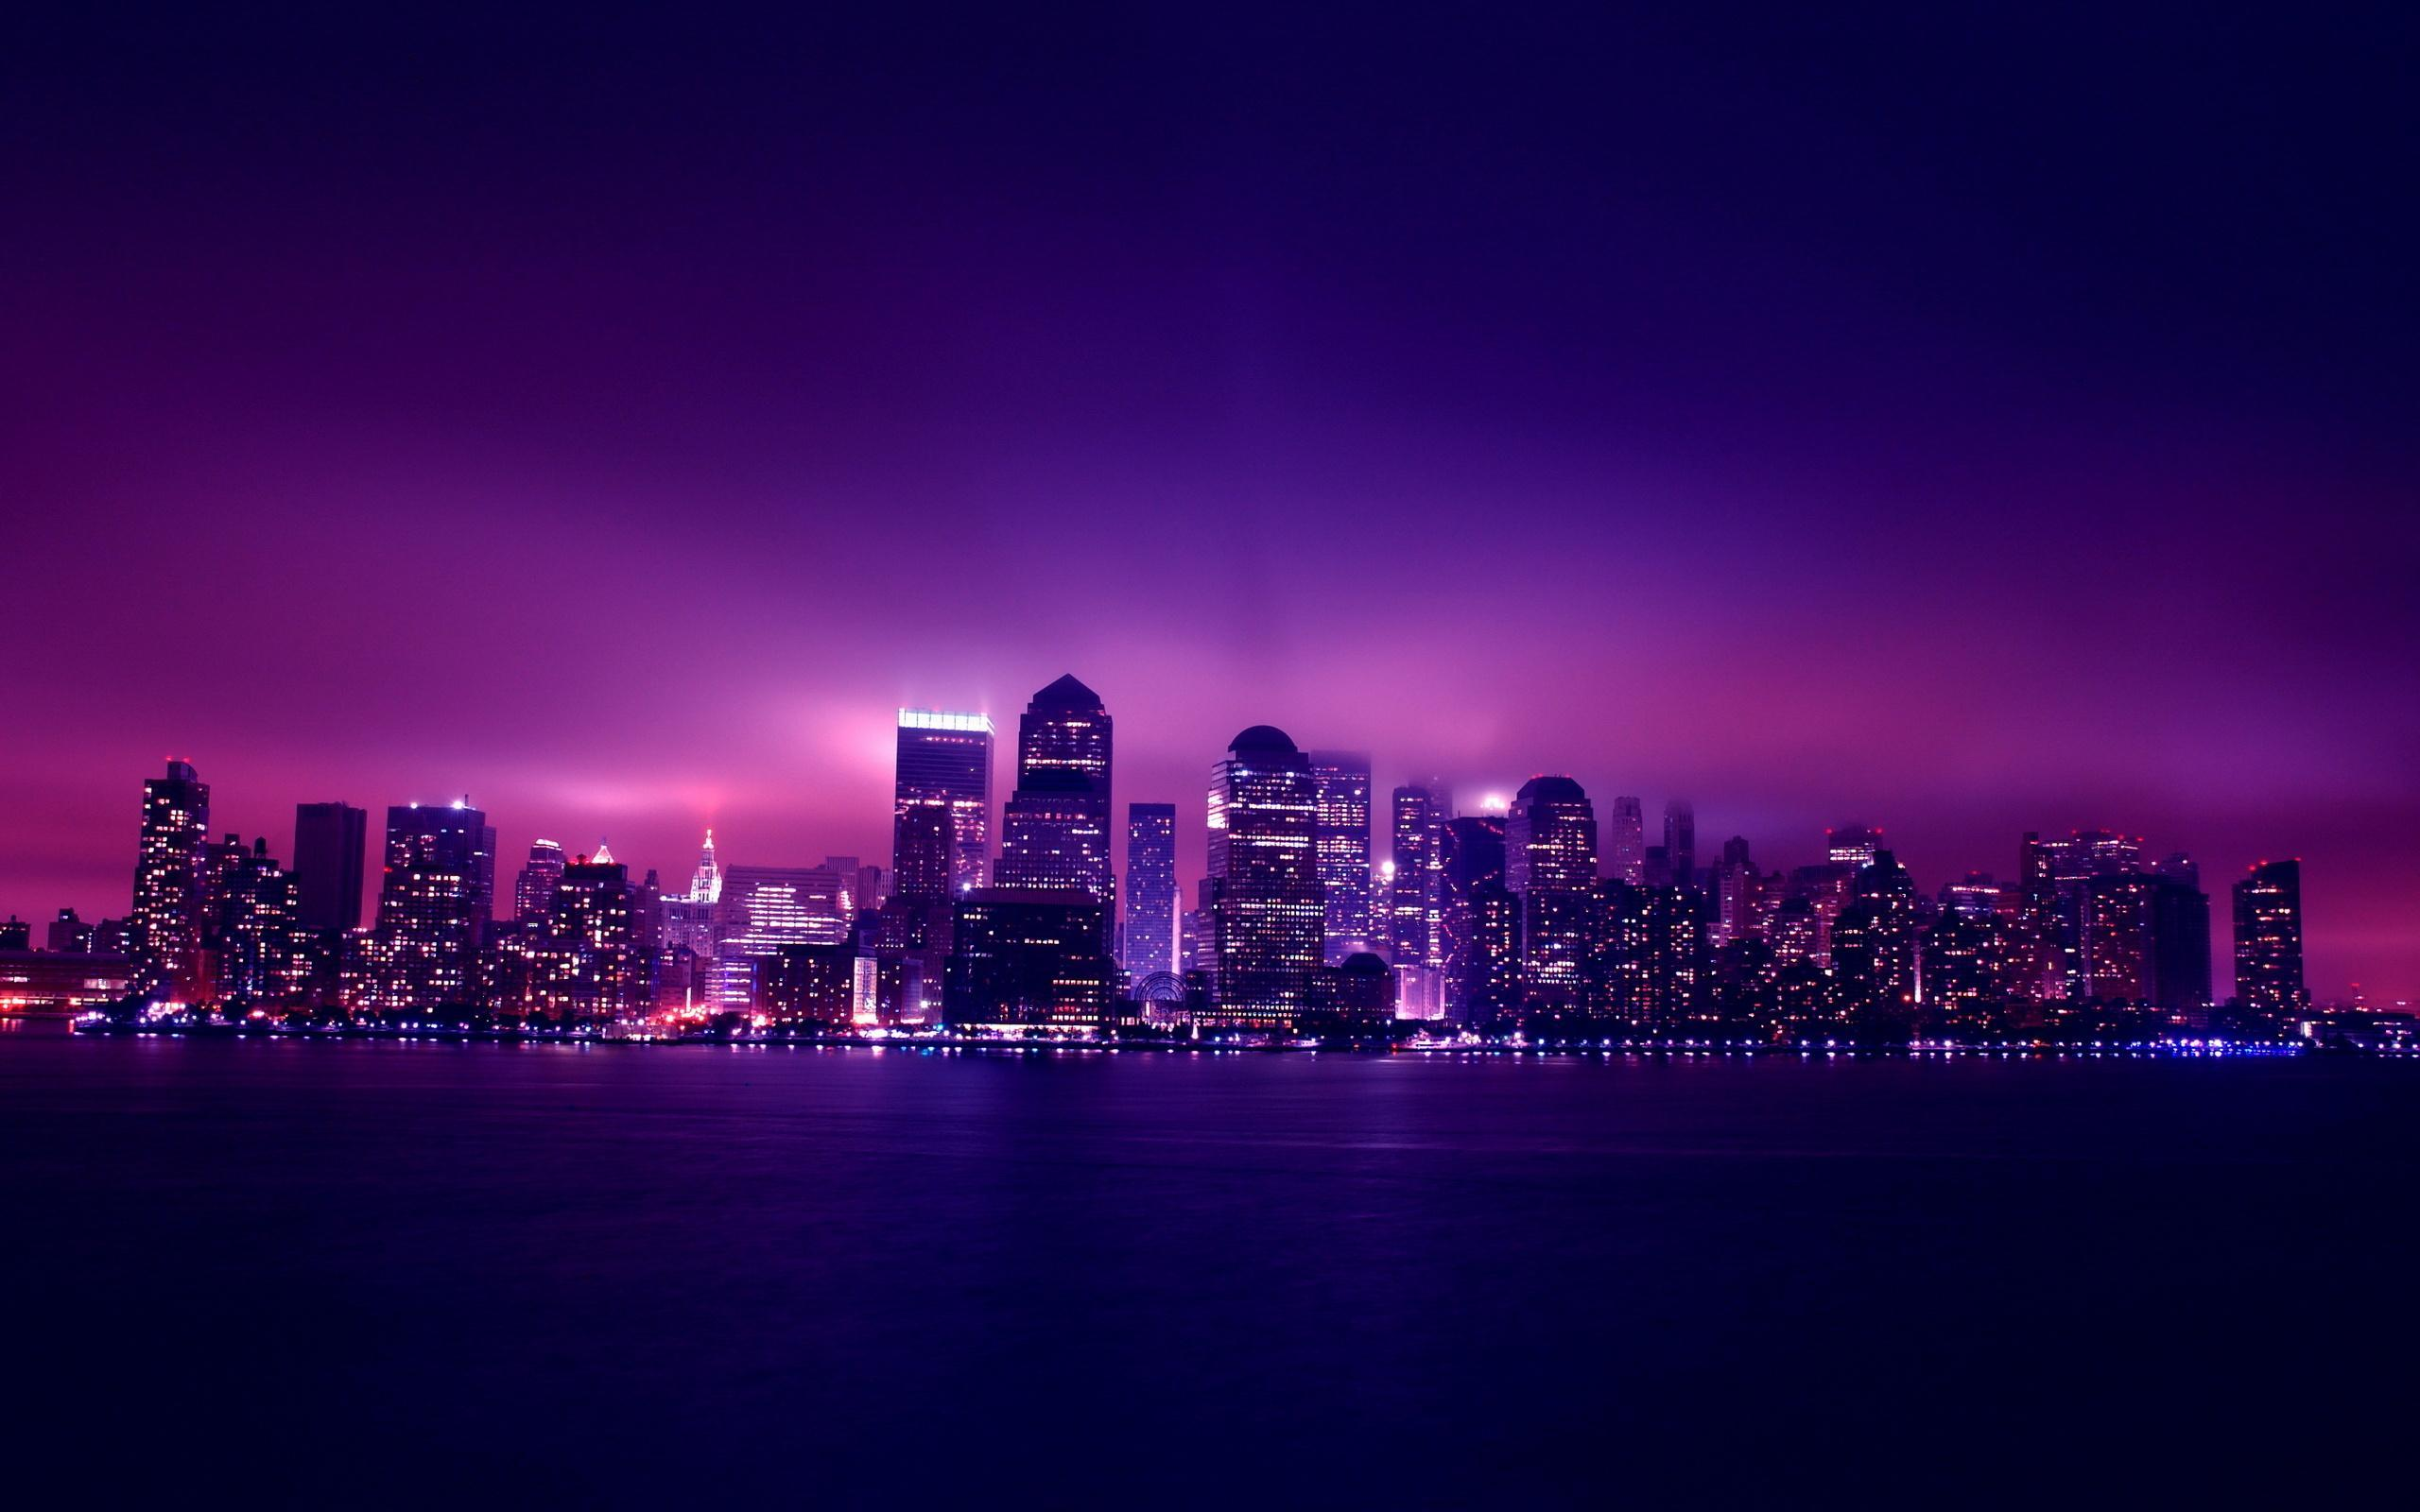 Aesthetic Night City Pc Hd Wallpapers Wallpaper Cave